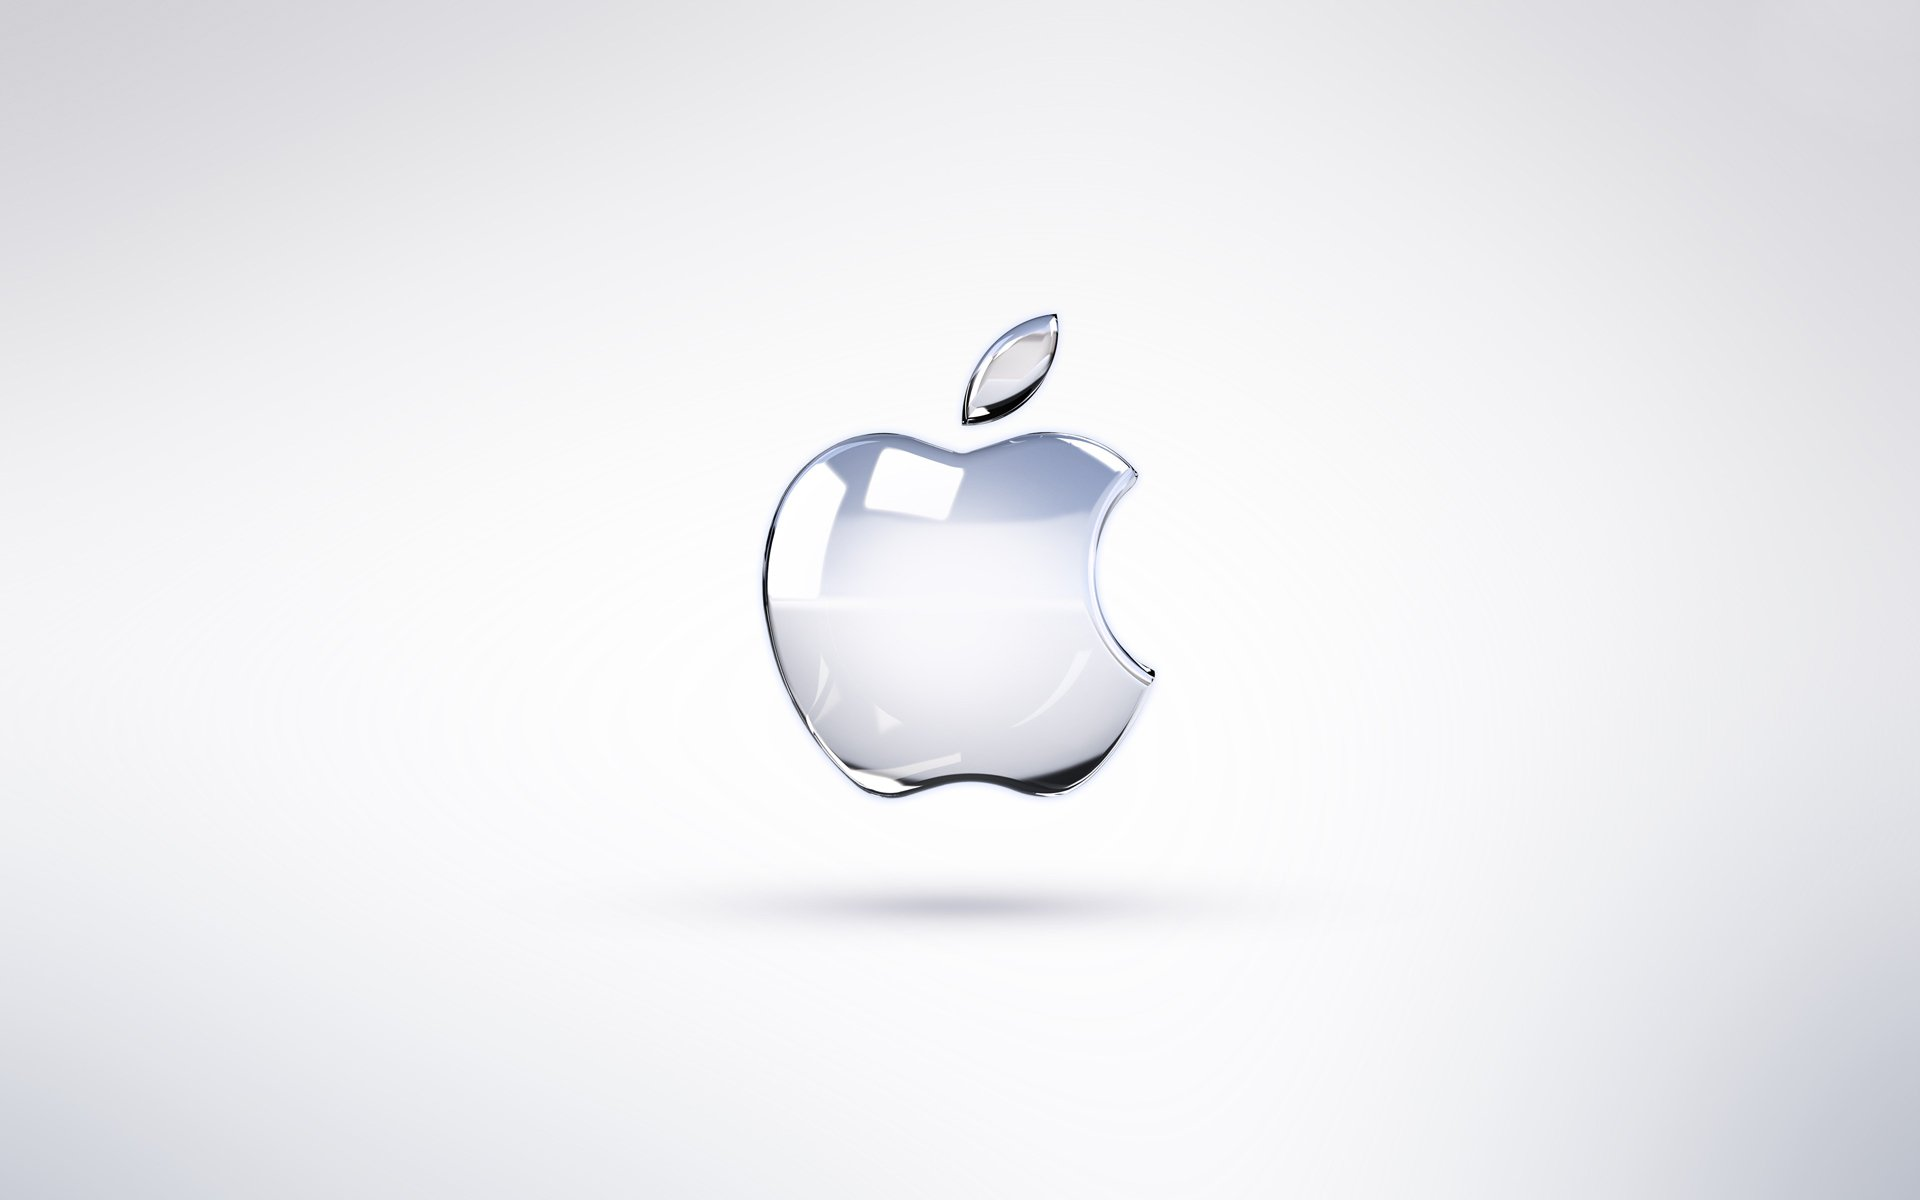 glass, apple, bright apple, logo